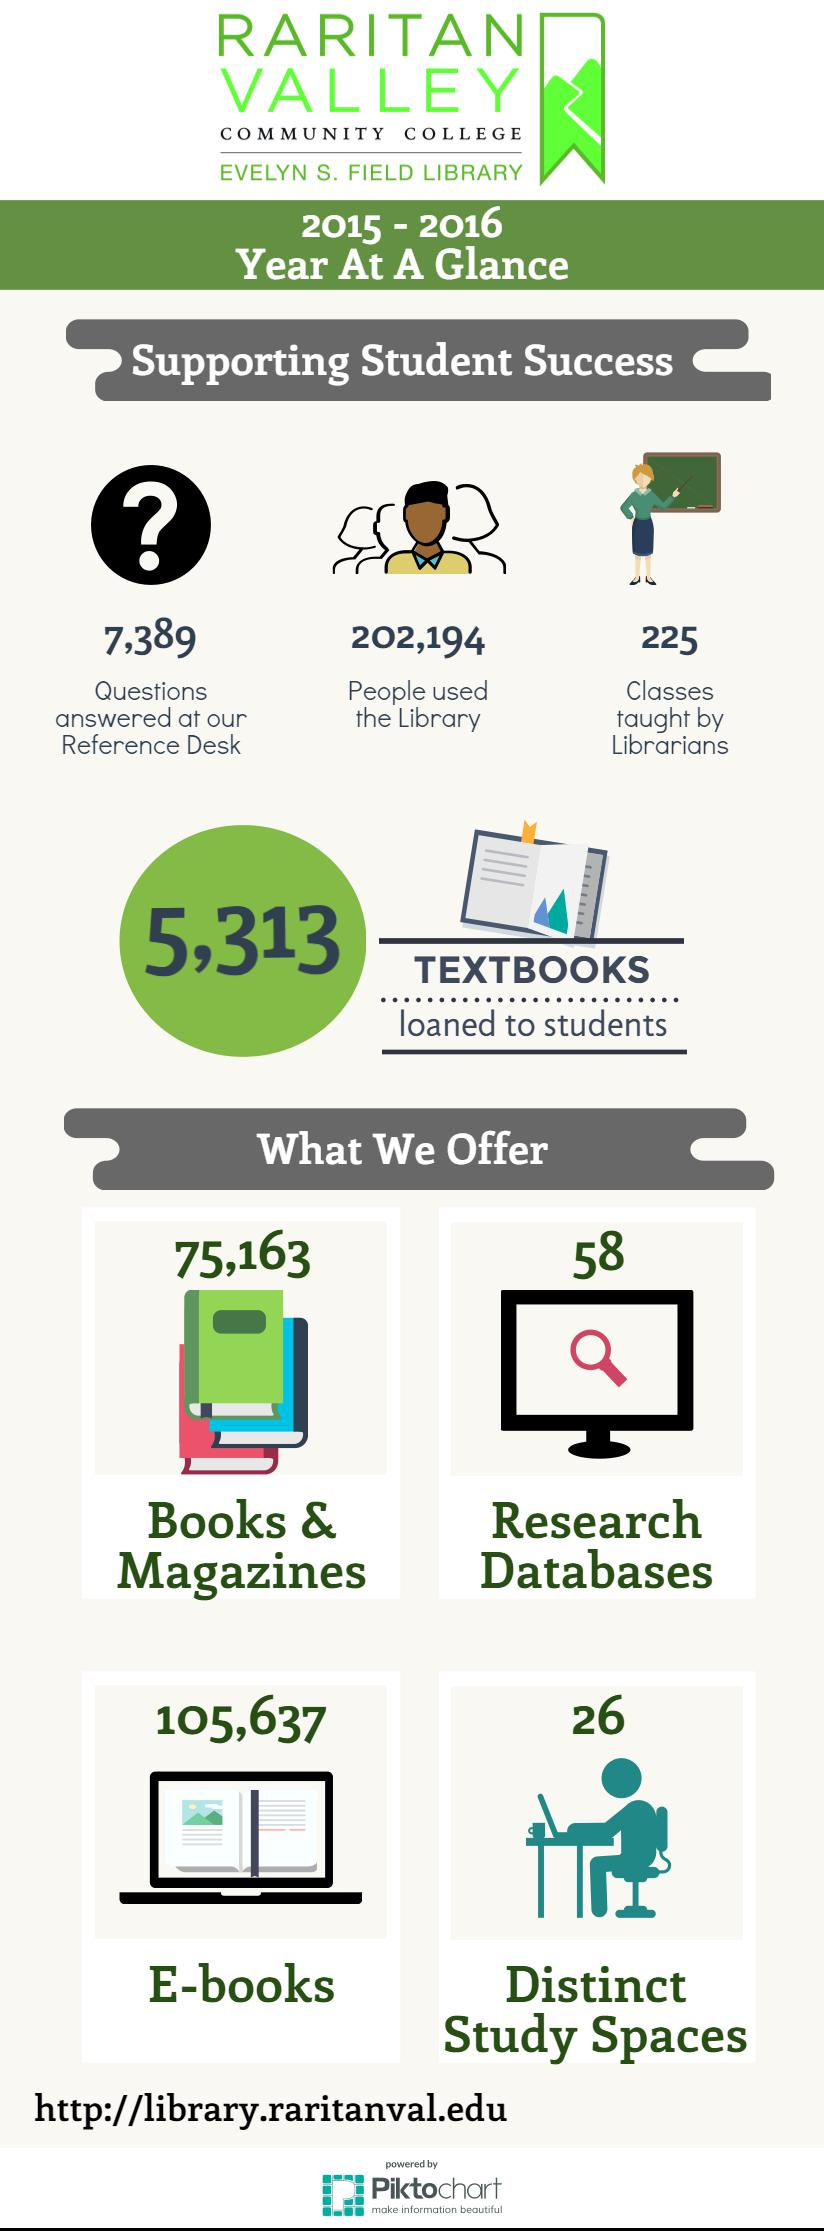 Evelyn s field library blog evelyn s field library at raritan year at a glance infographic fandeluxe Gallery